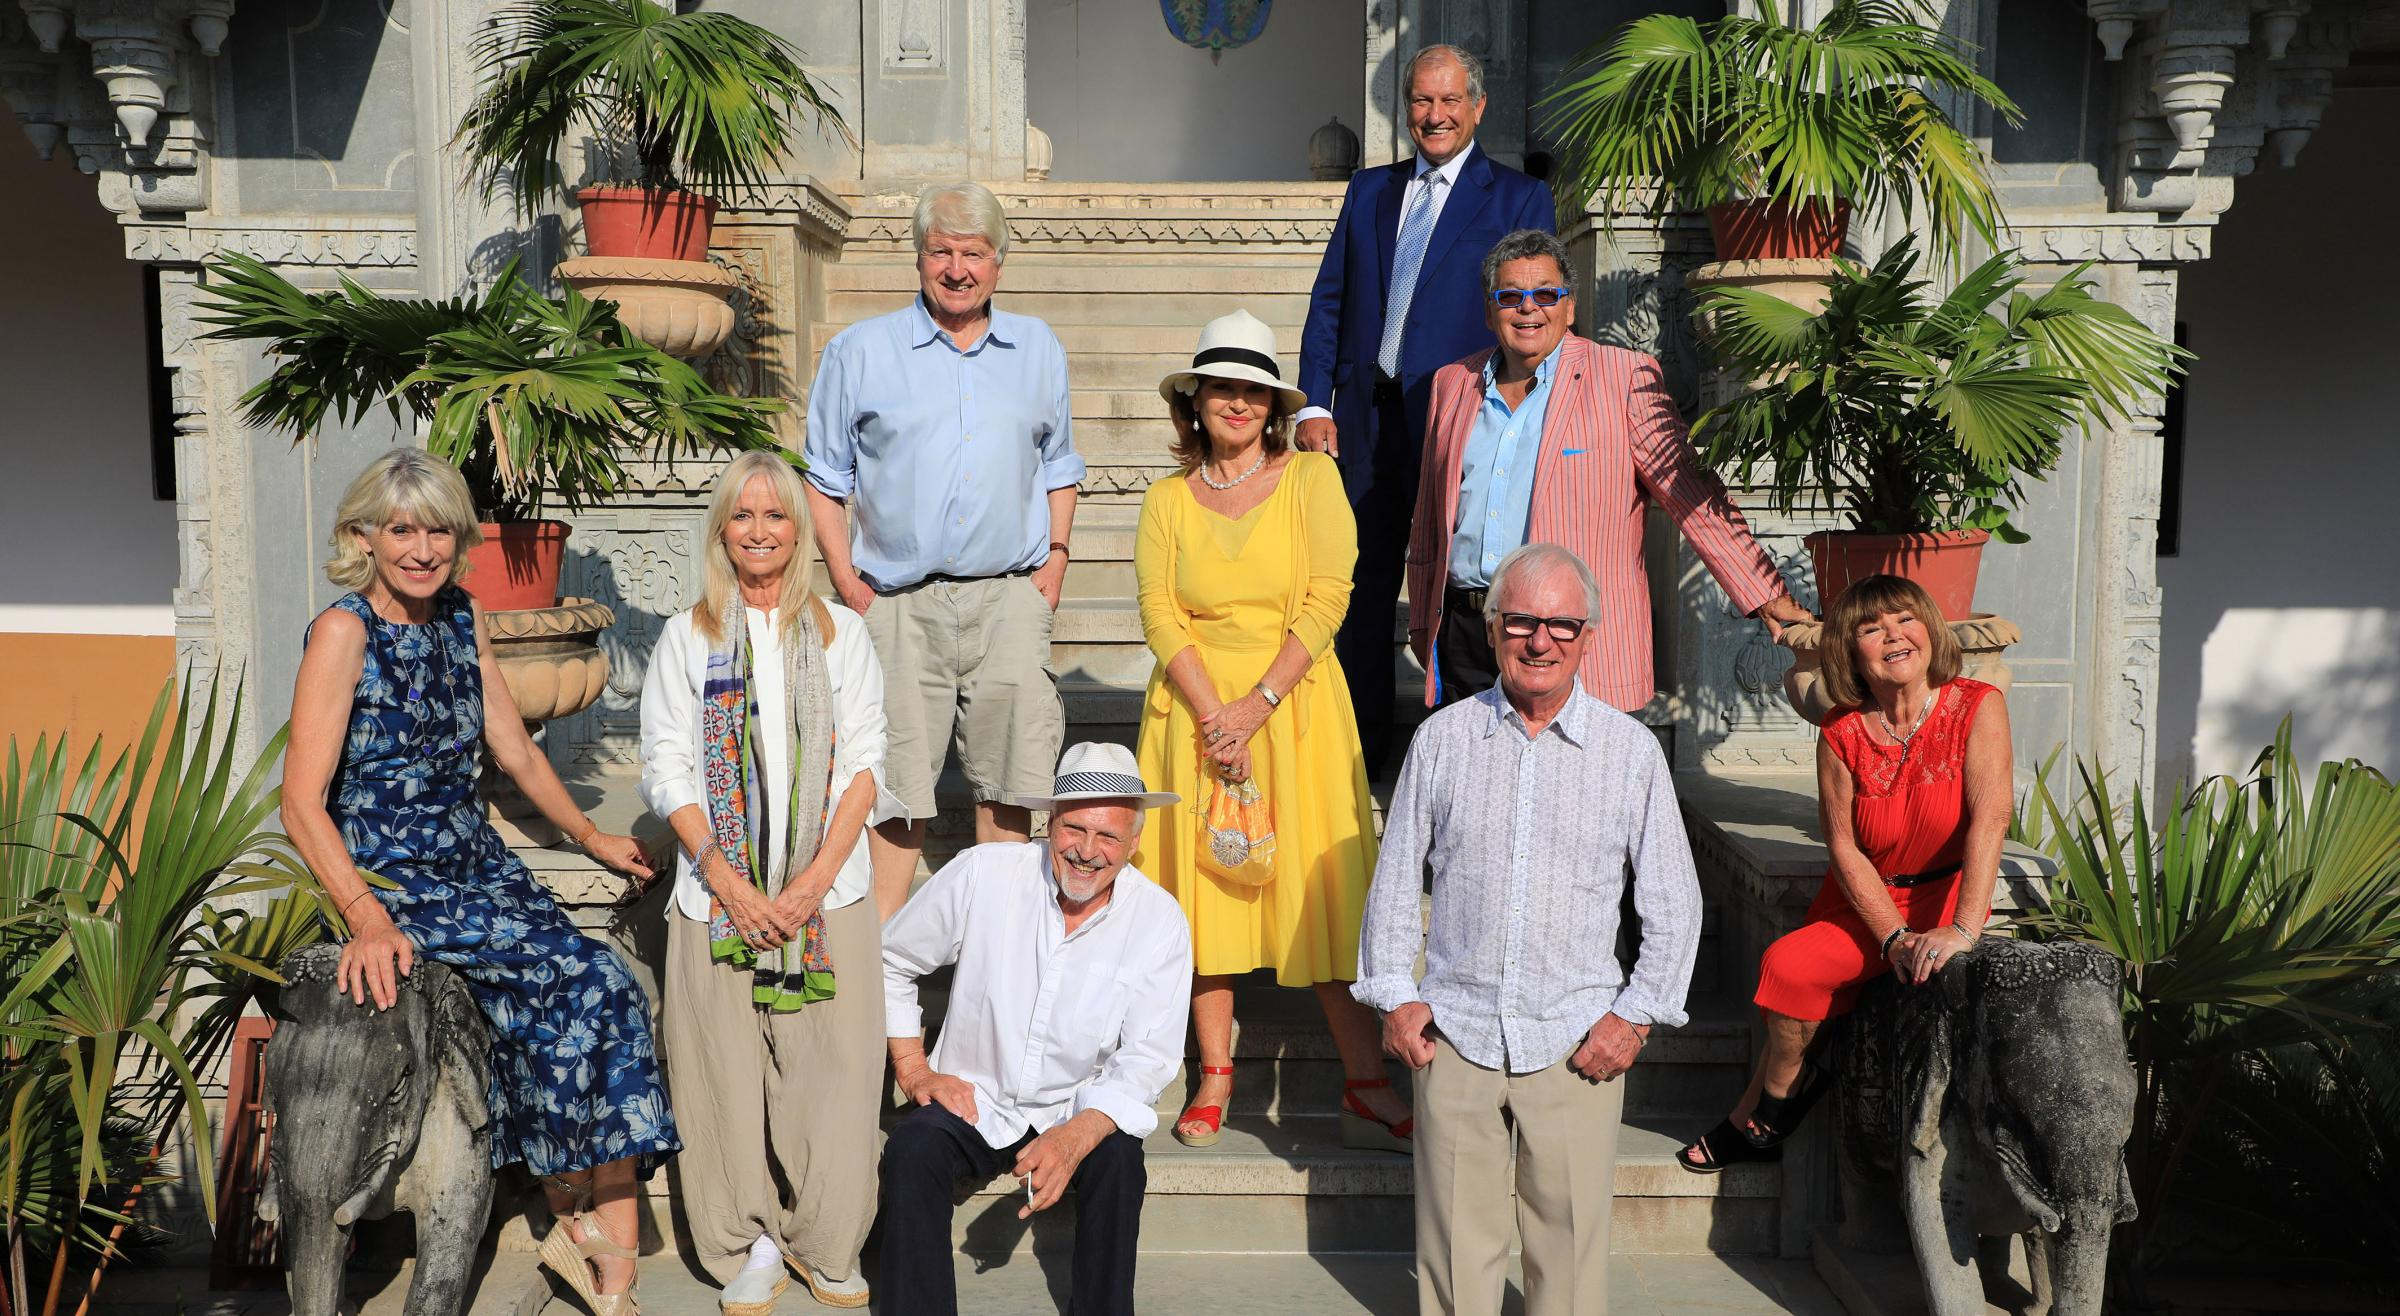 Celebrities embrace life in India in The Real Marigold Hotel